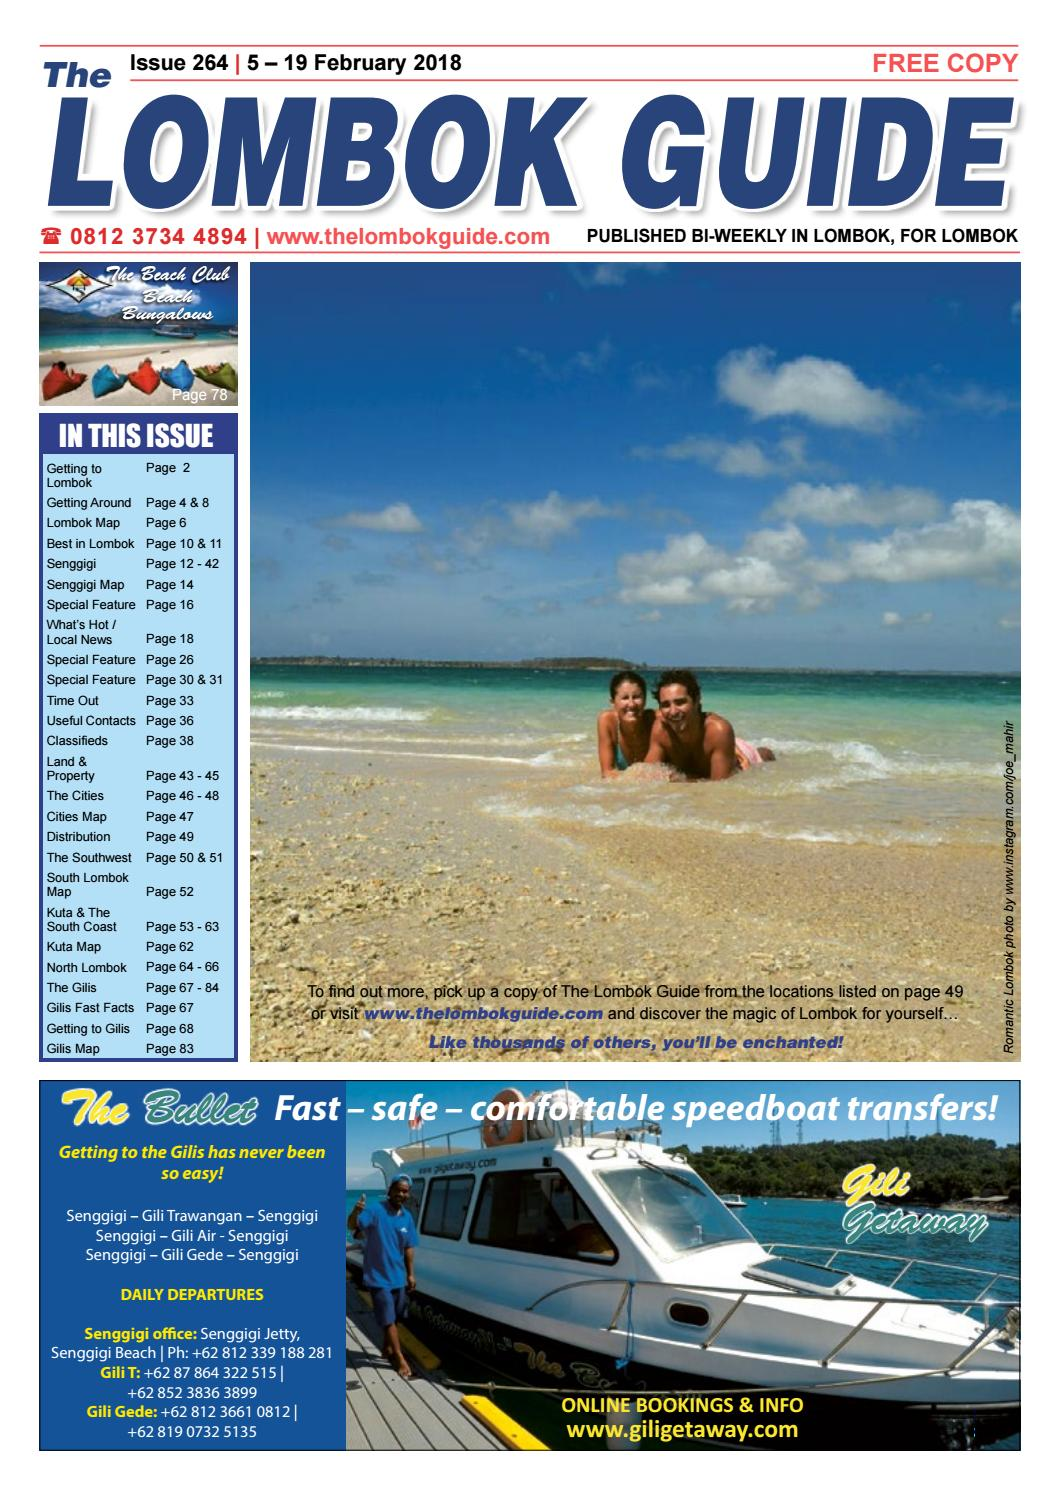 The Lombok Guide Issue 264 By Issuu Voucher Hotel Red Planet Bintang 2 Jakarta